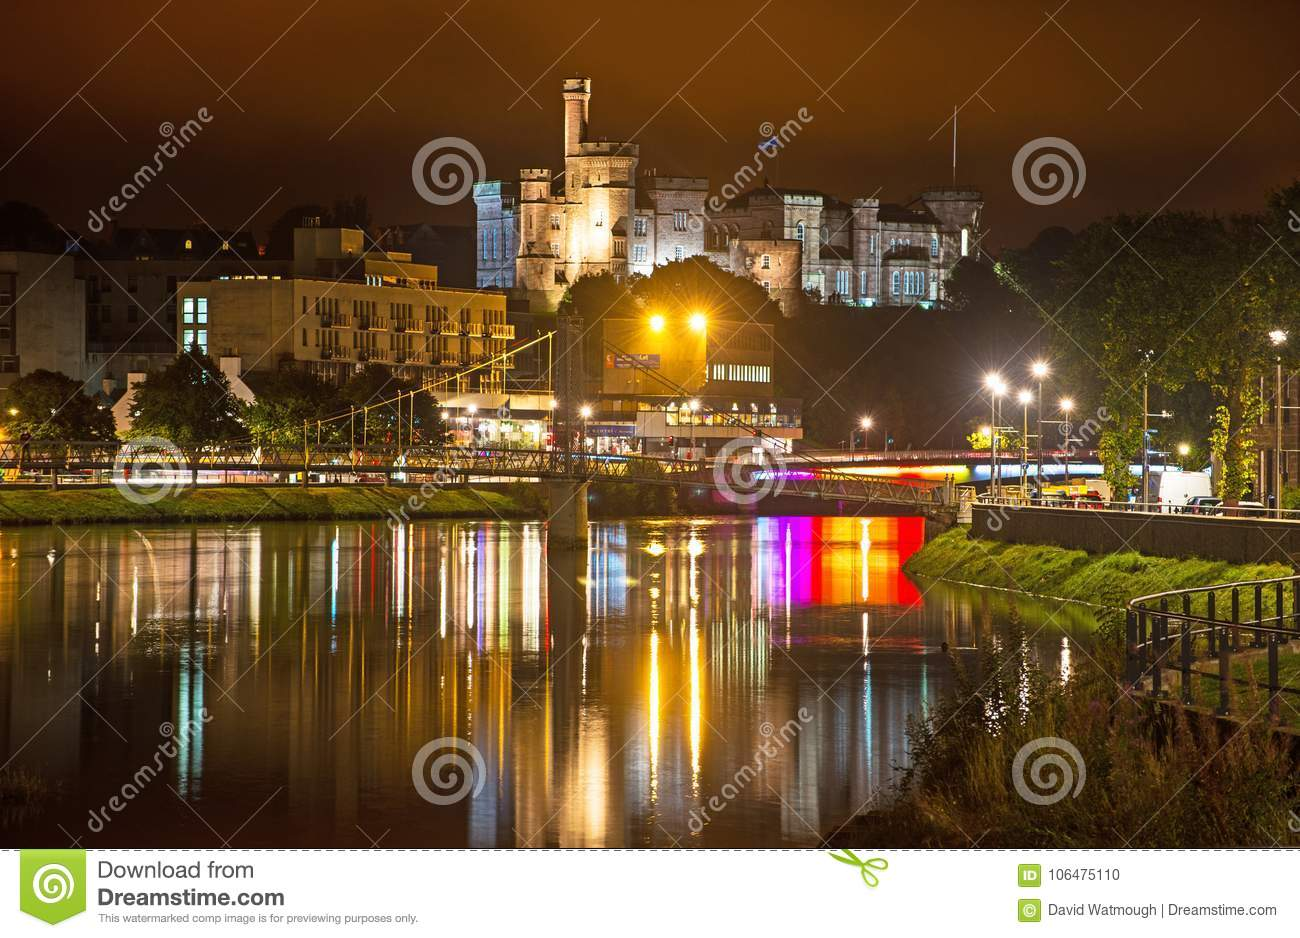 Inverness River Ness and Castle at night